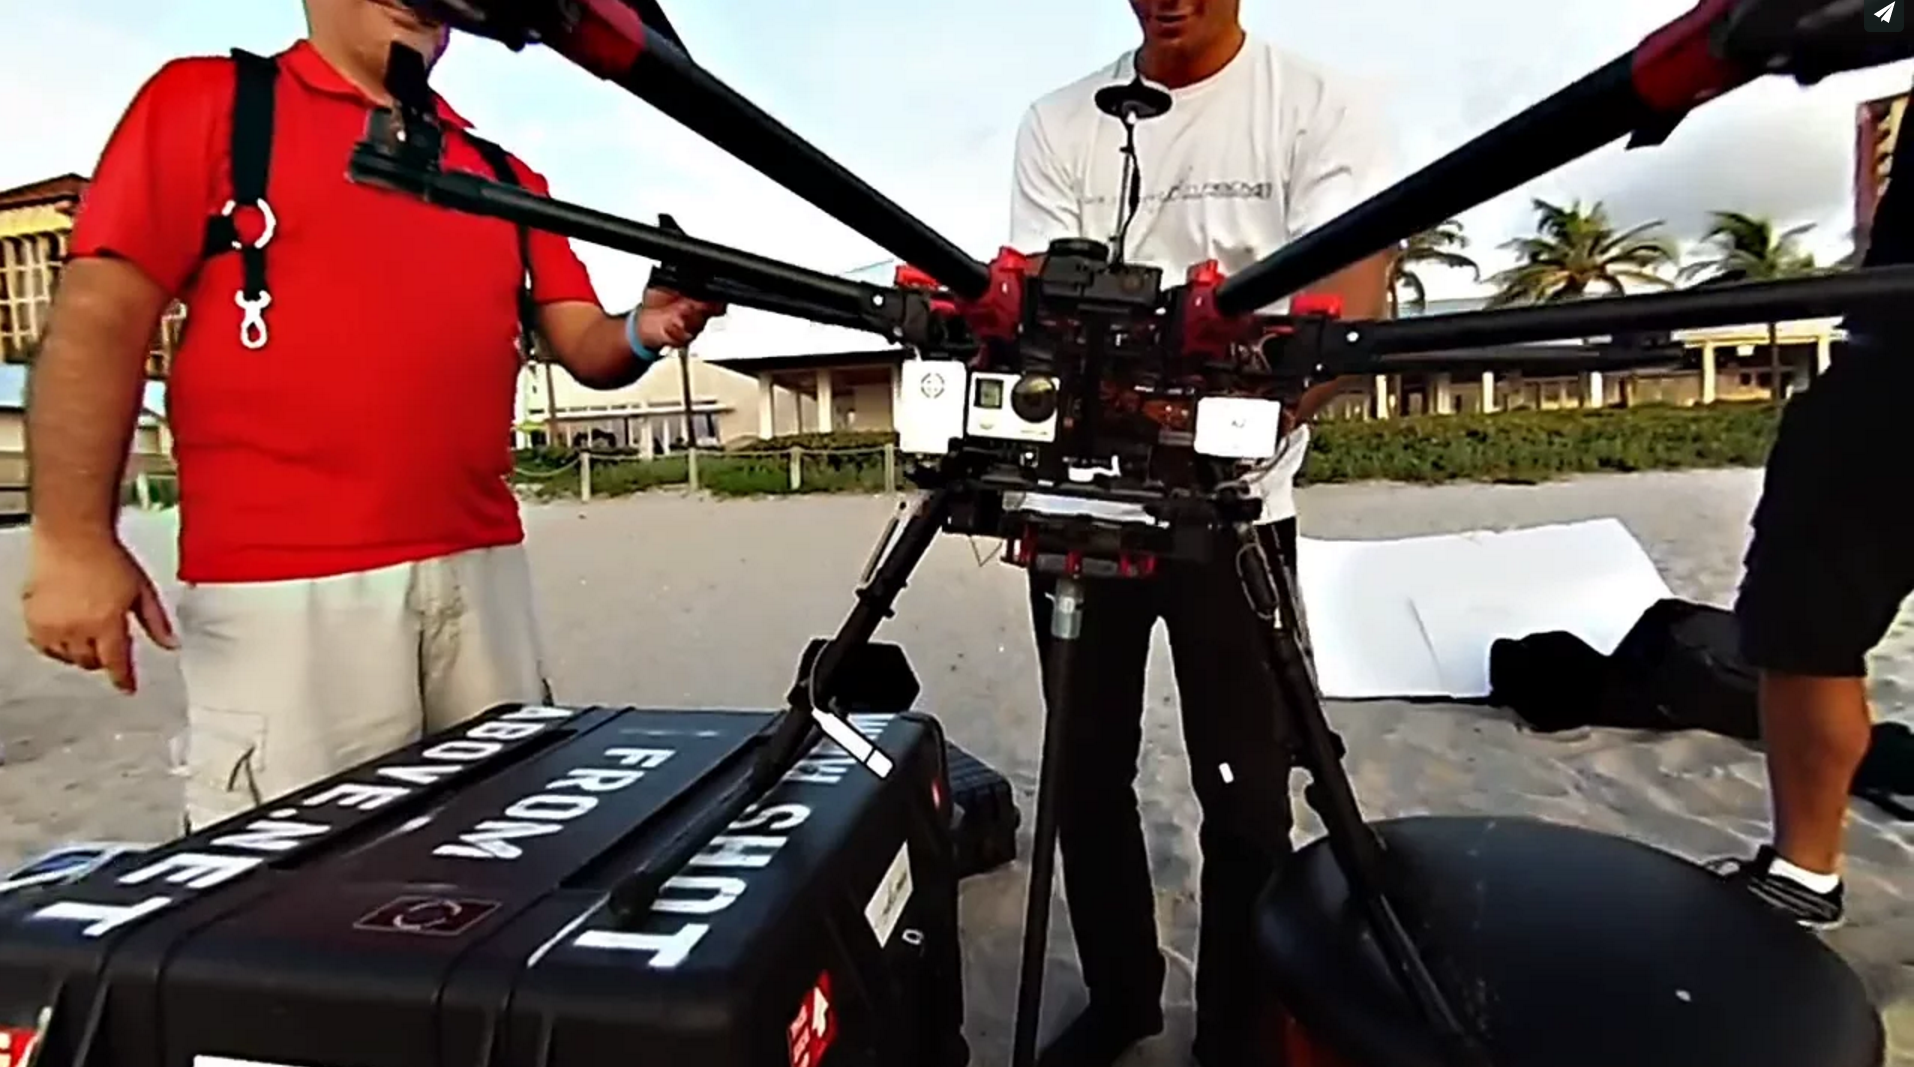 Behind the project - 360°Aerial shoot